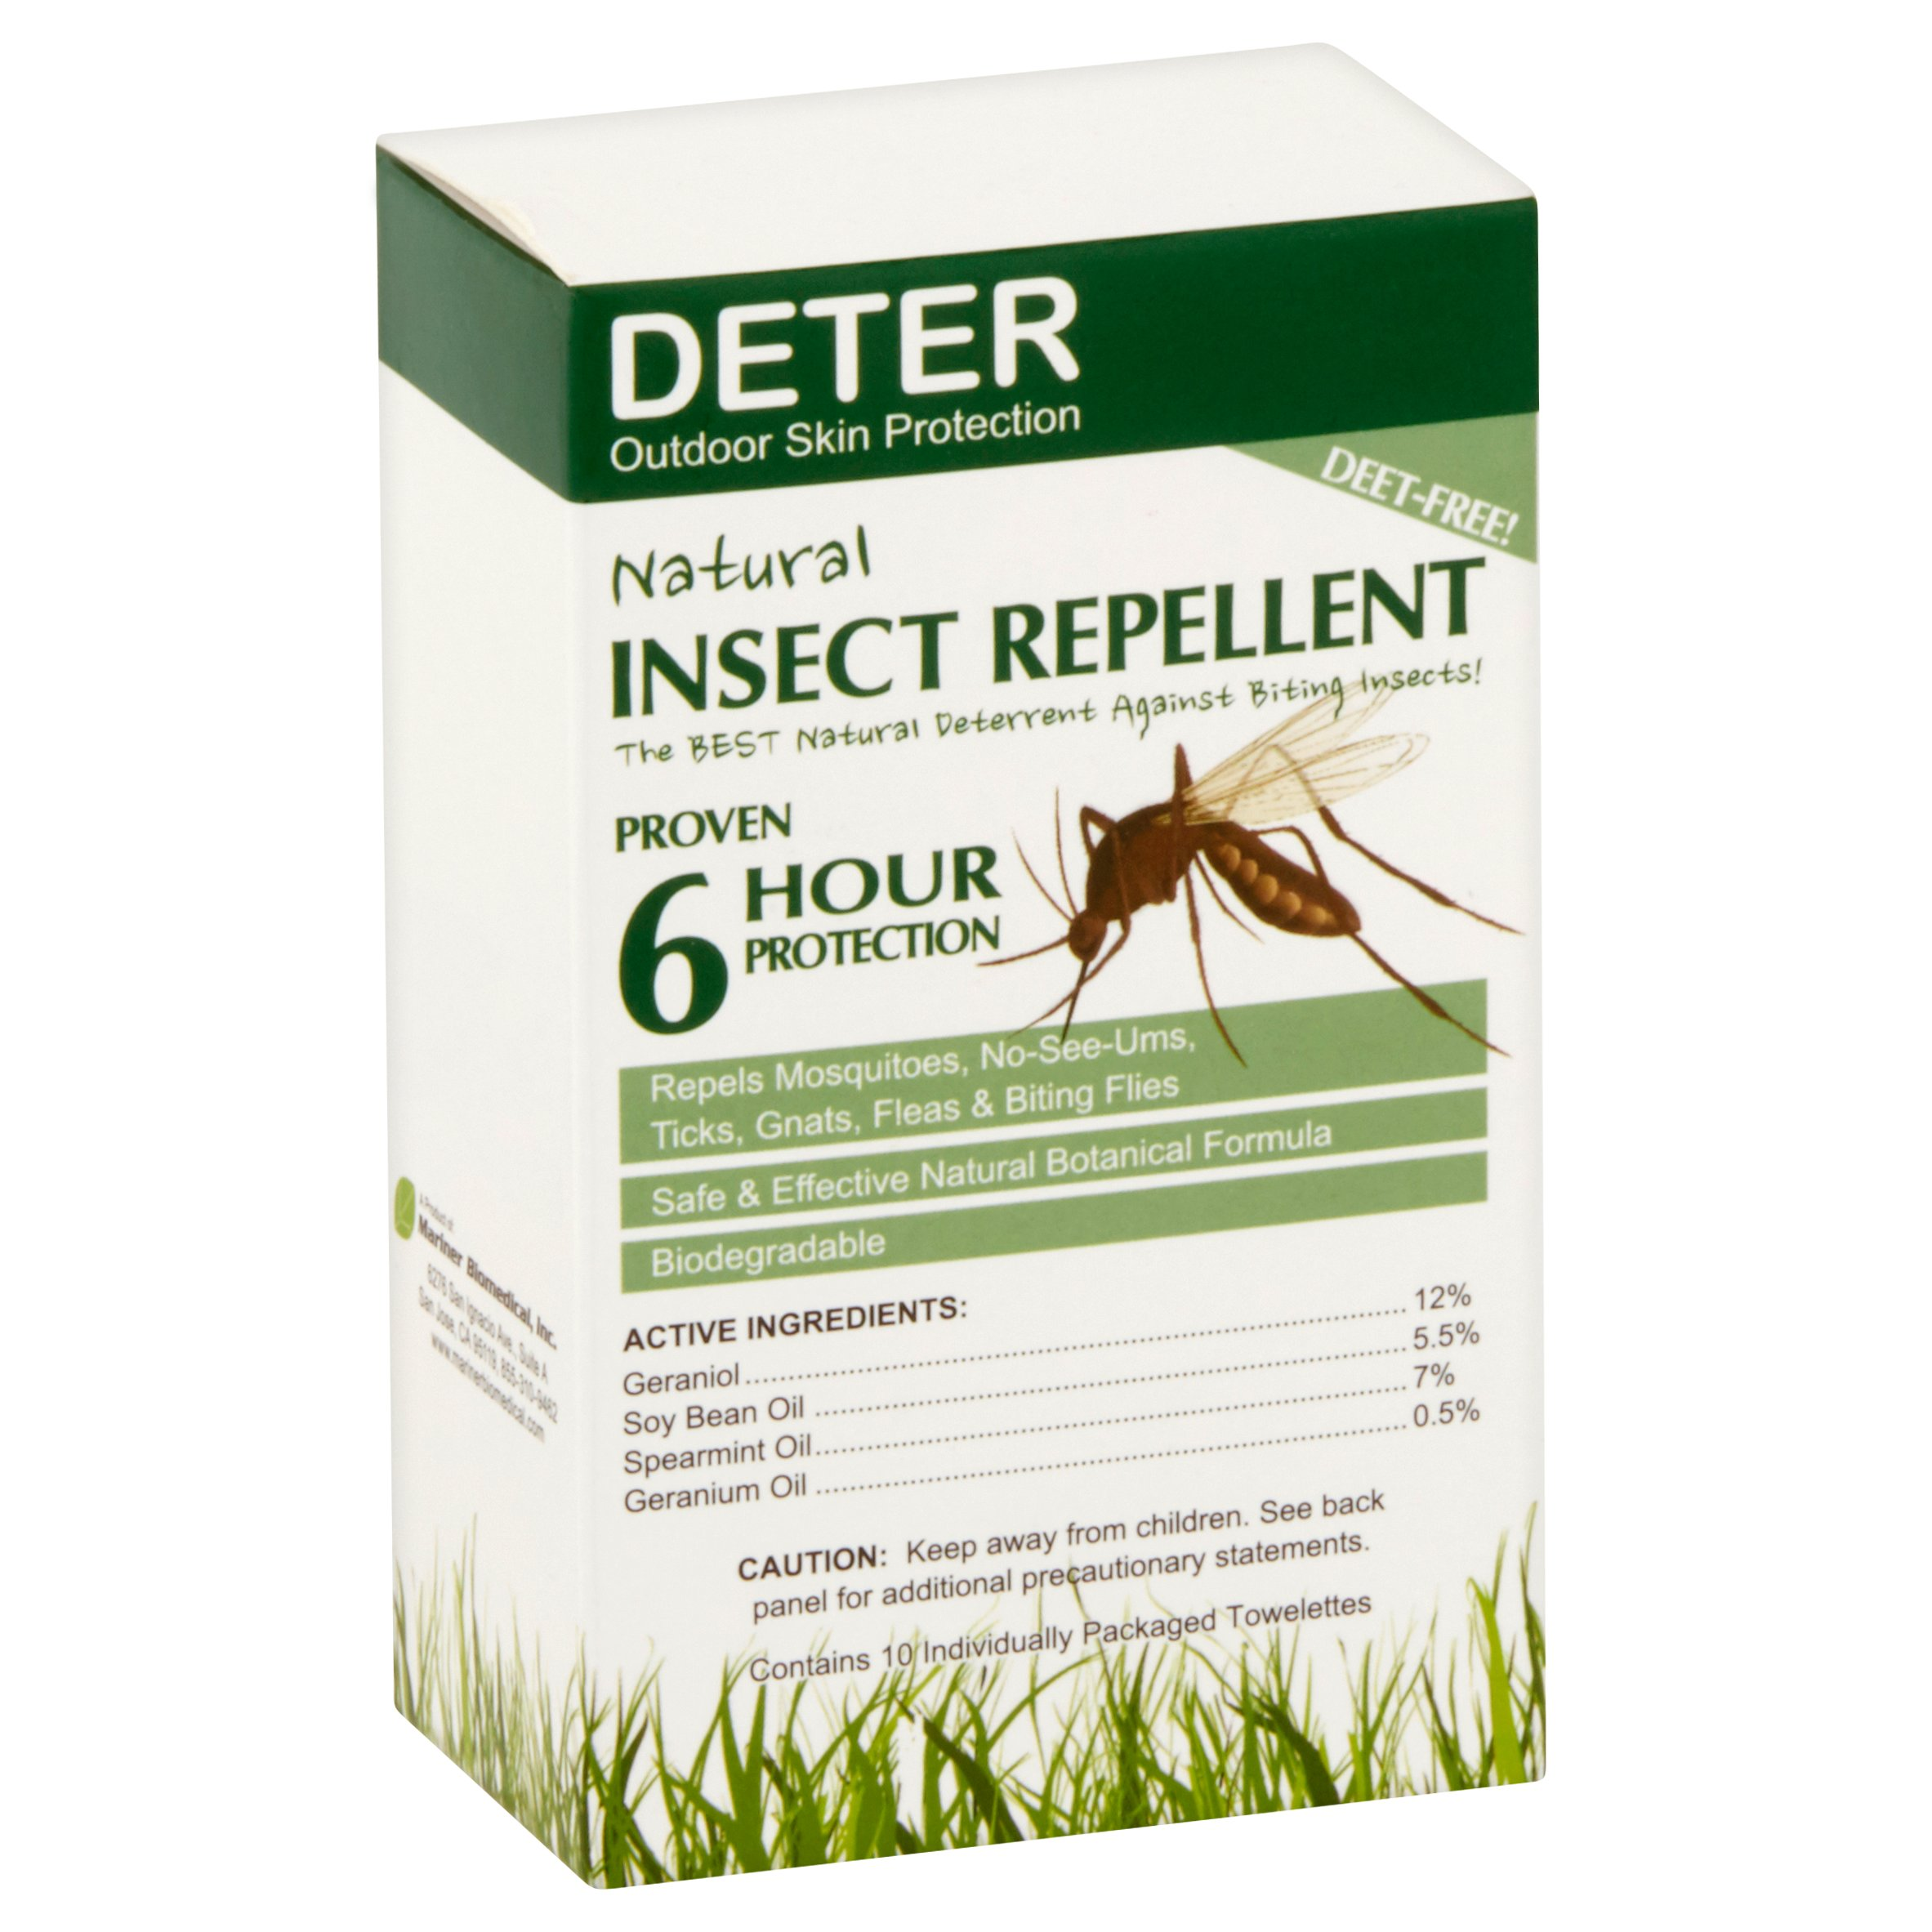 dp deep repellent amazon off best woods viii com familycare oz mosquito dry patio insect i smooth for